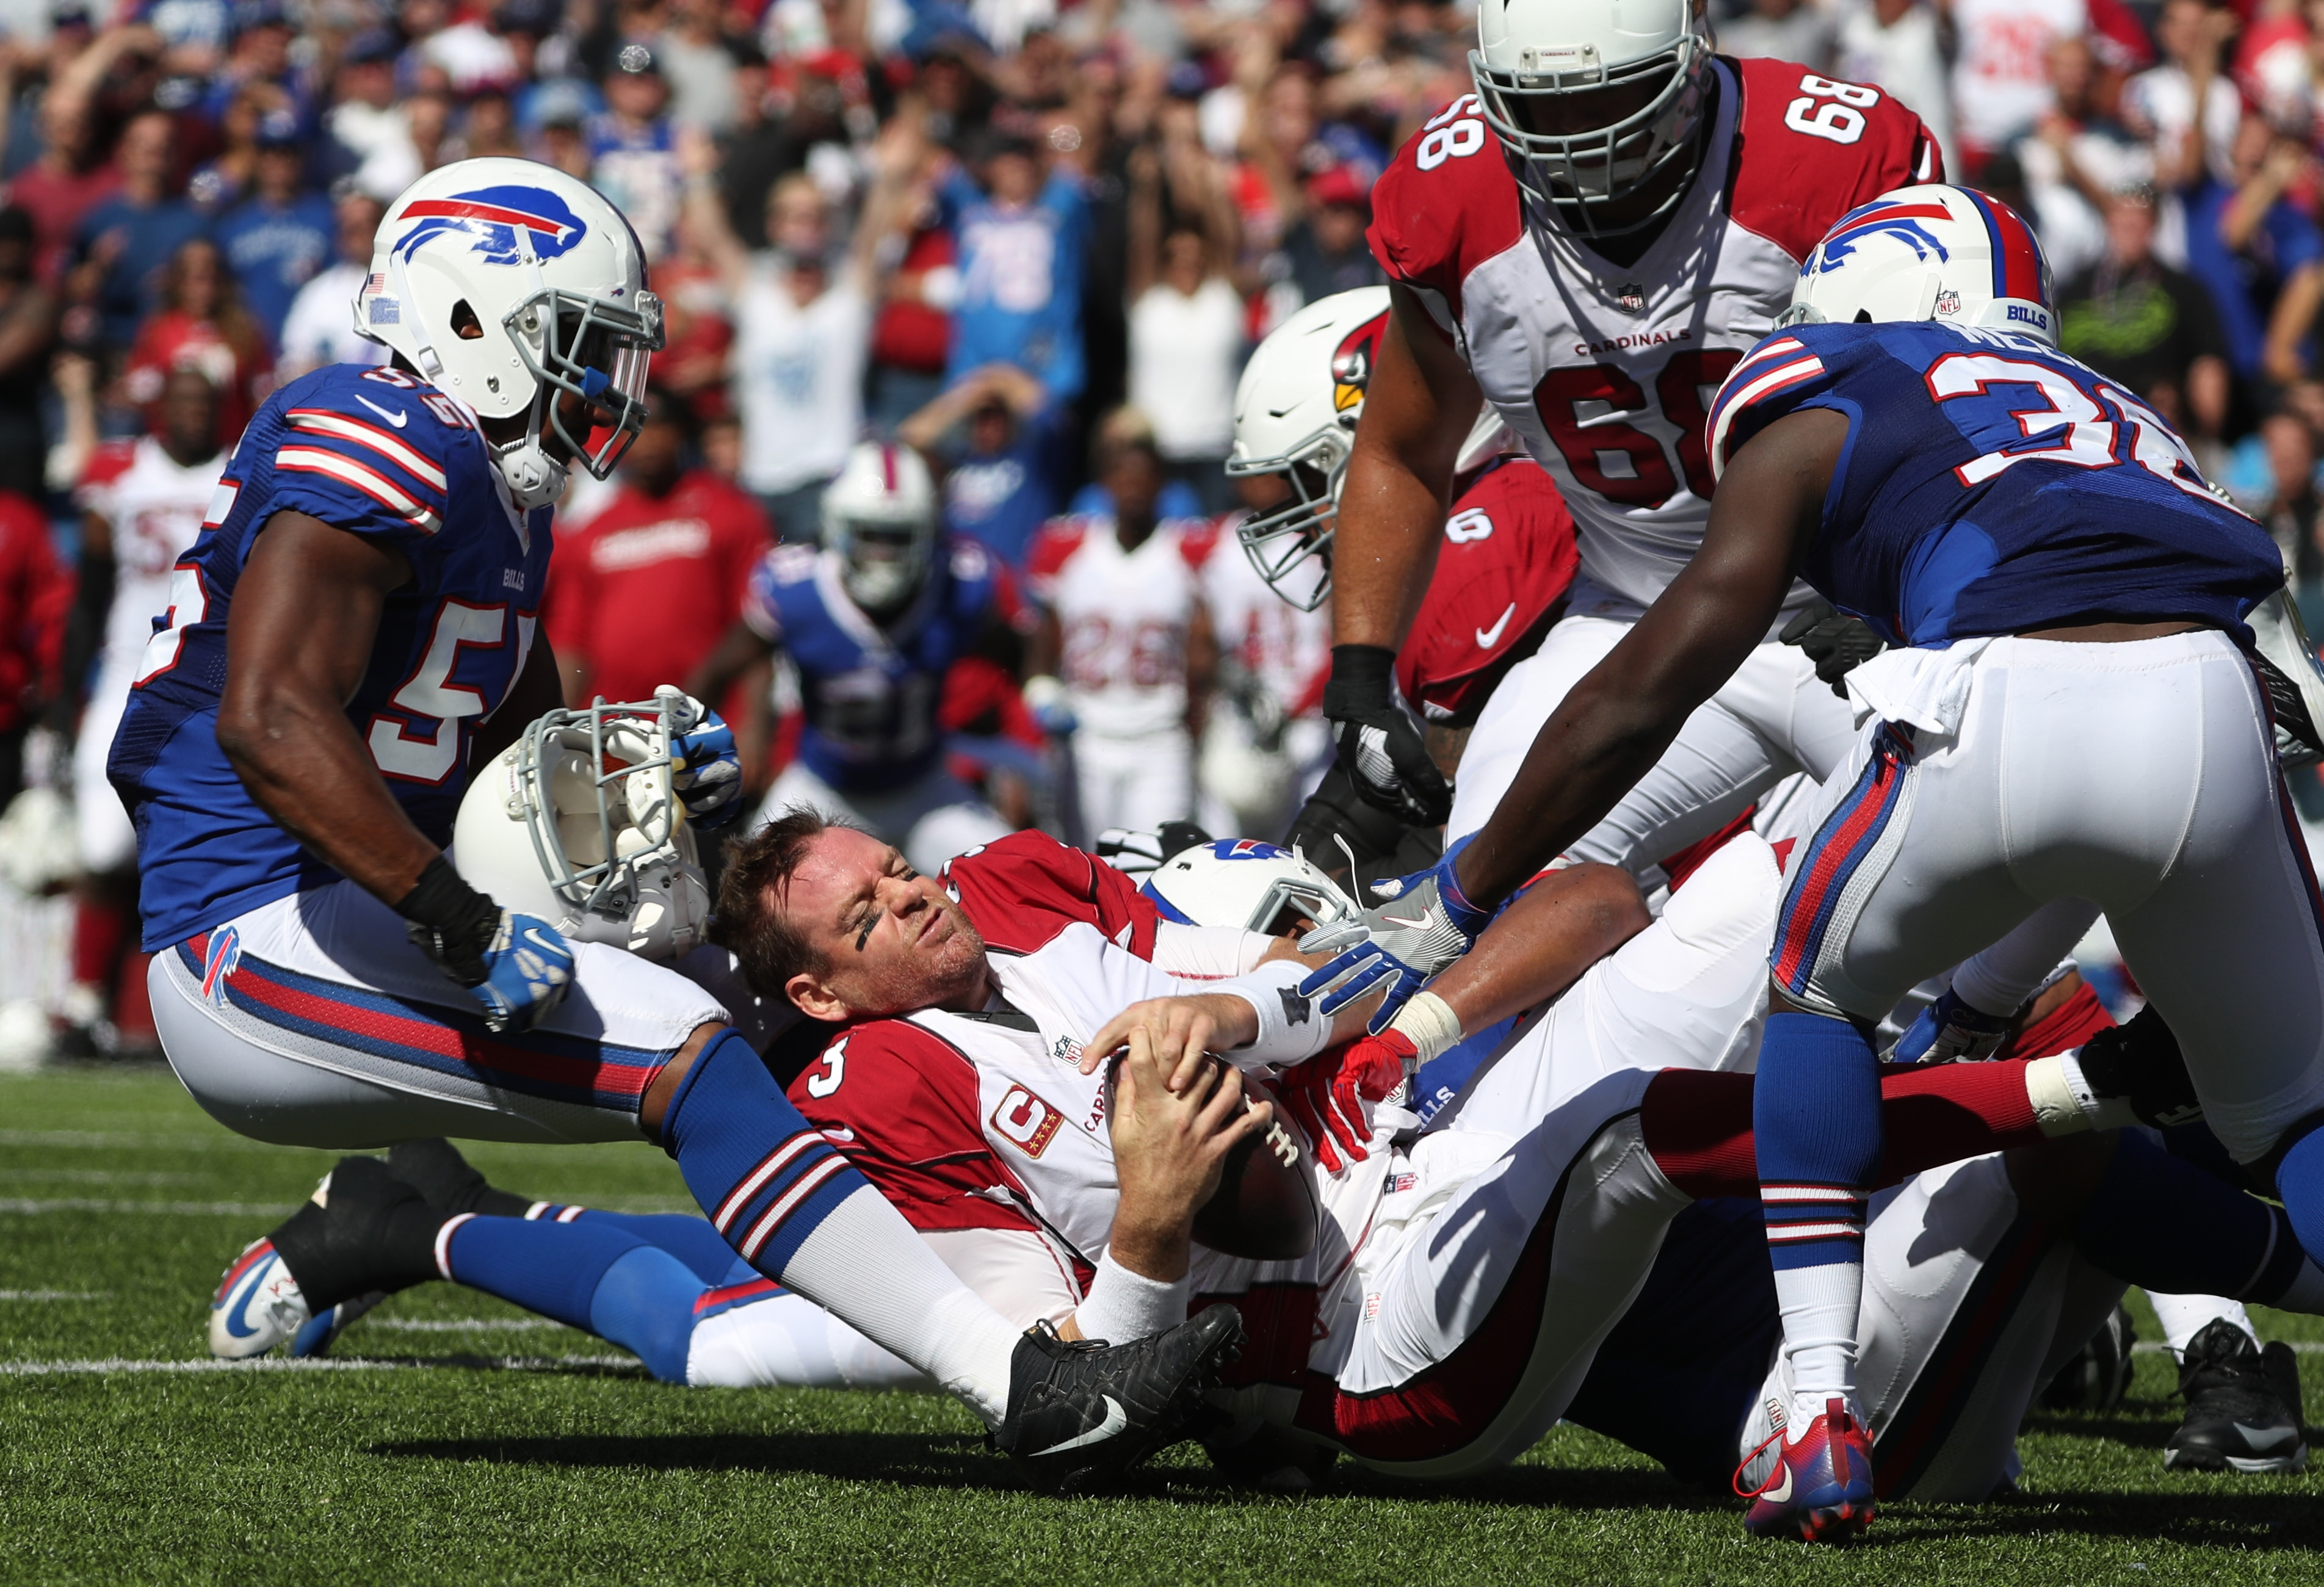 Carson Palmer has his helmet ripped off by Jerry Hughes during the second quarter. (James P. McCoy/Buffalo News)